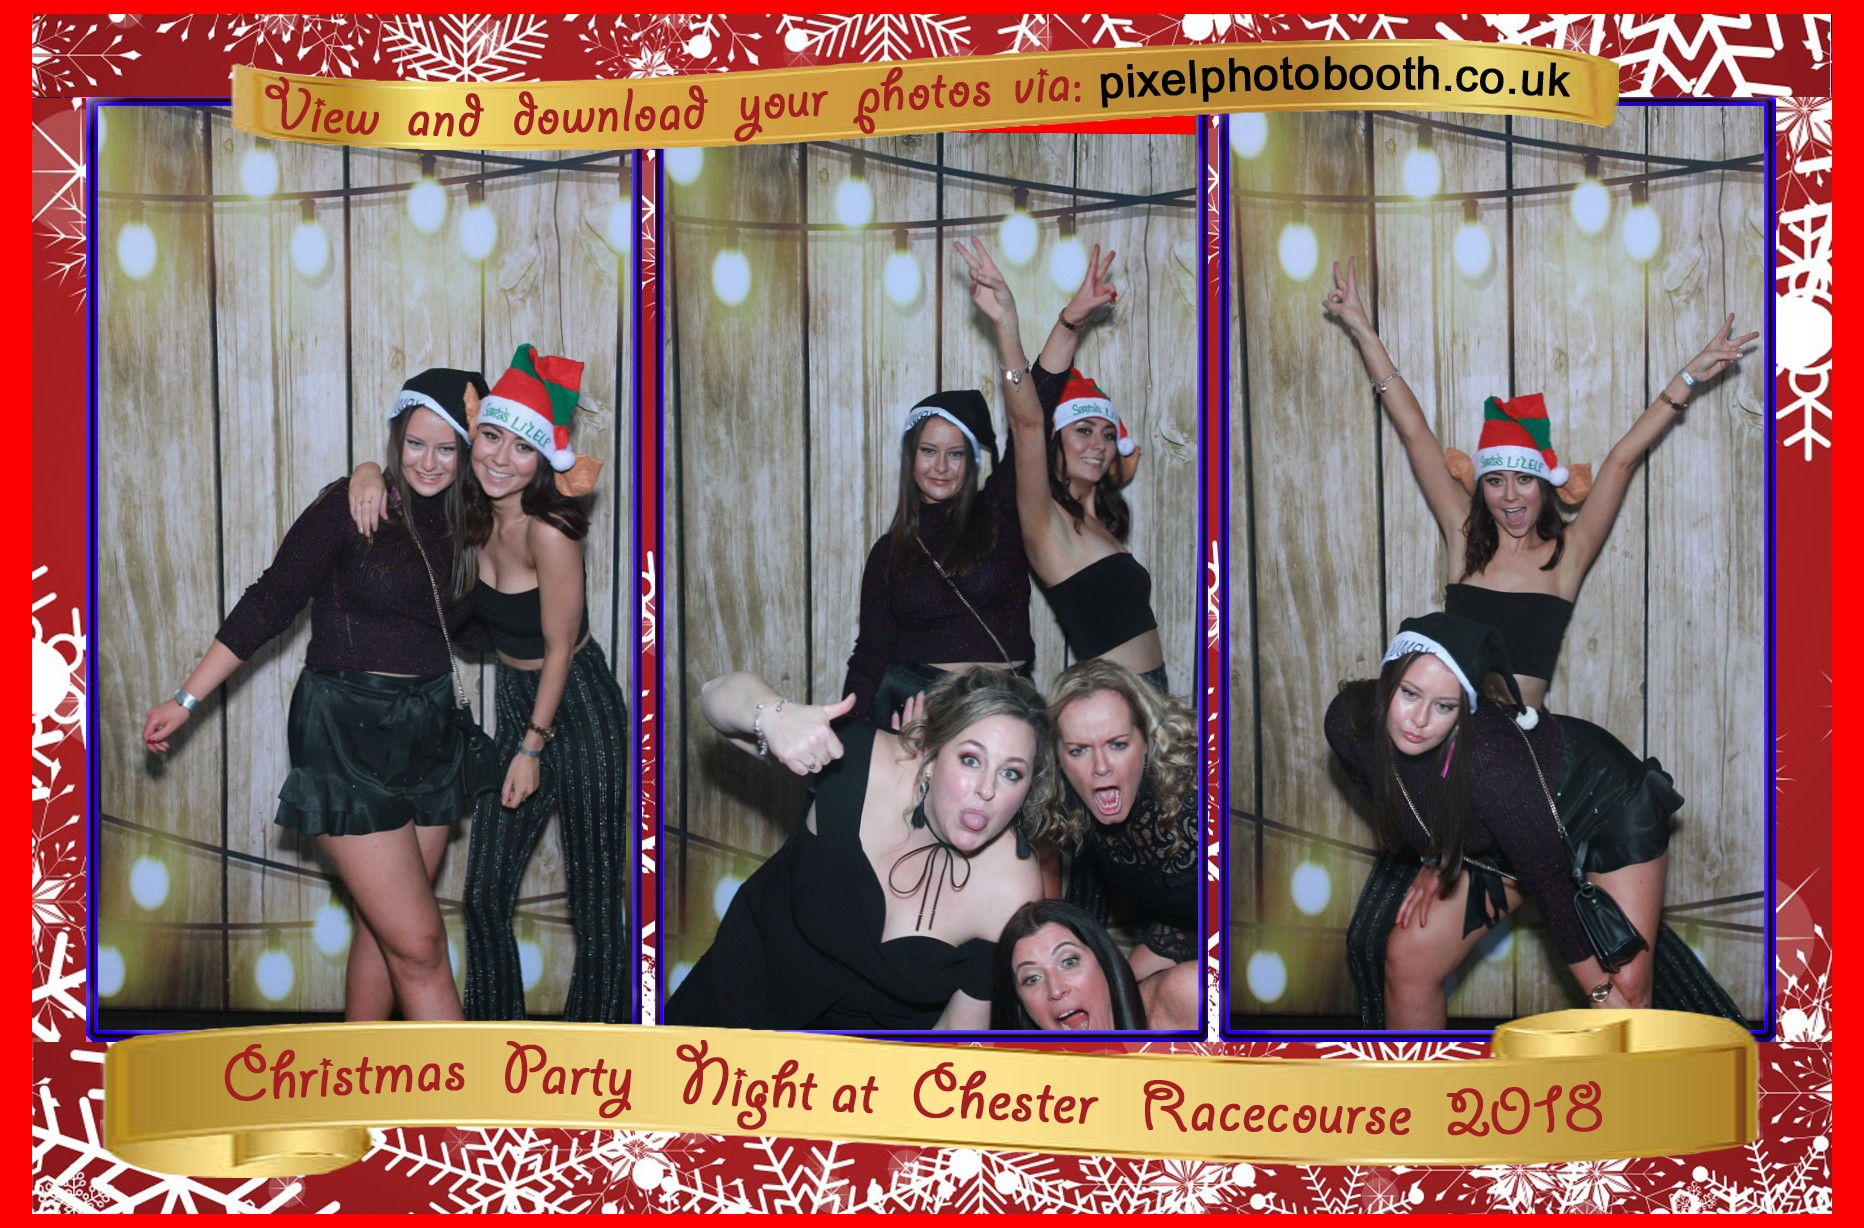 21st Dec 2018: Chester Racecourse Christmas Party night